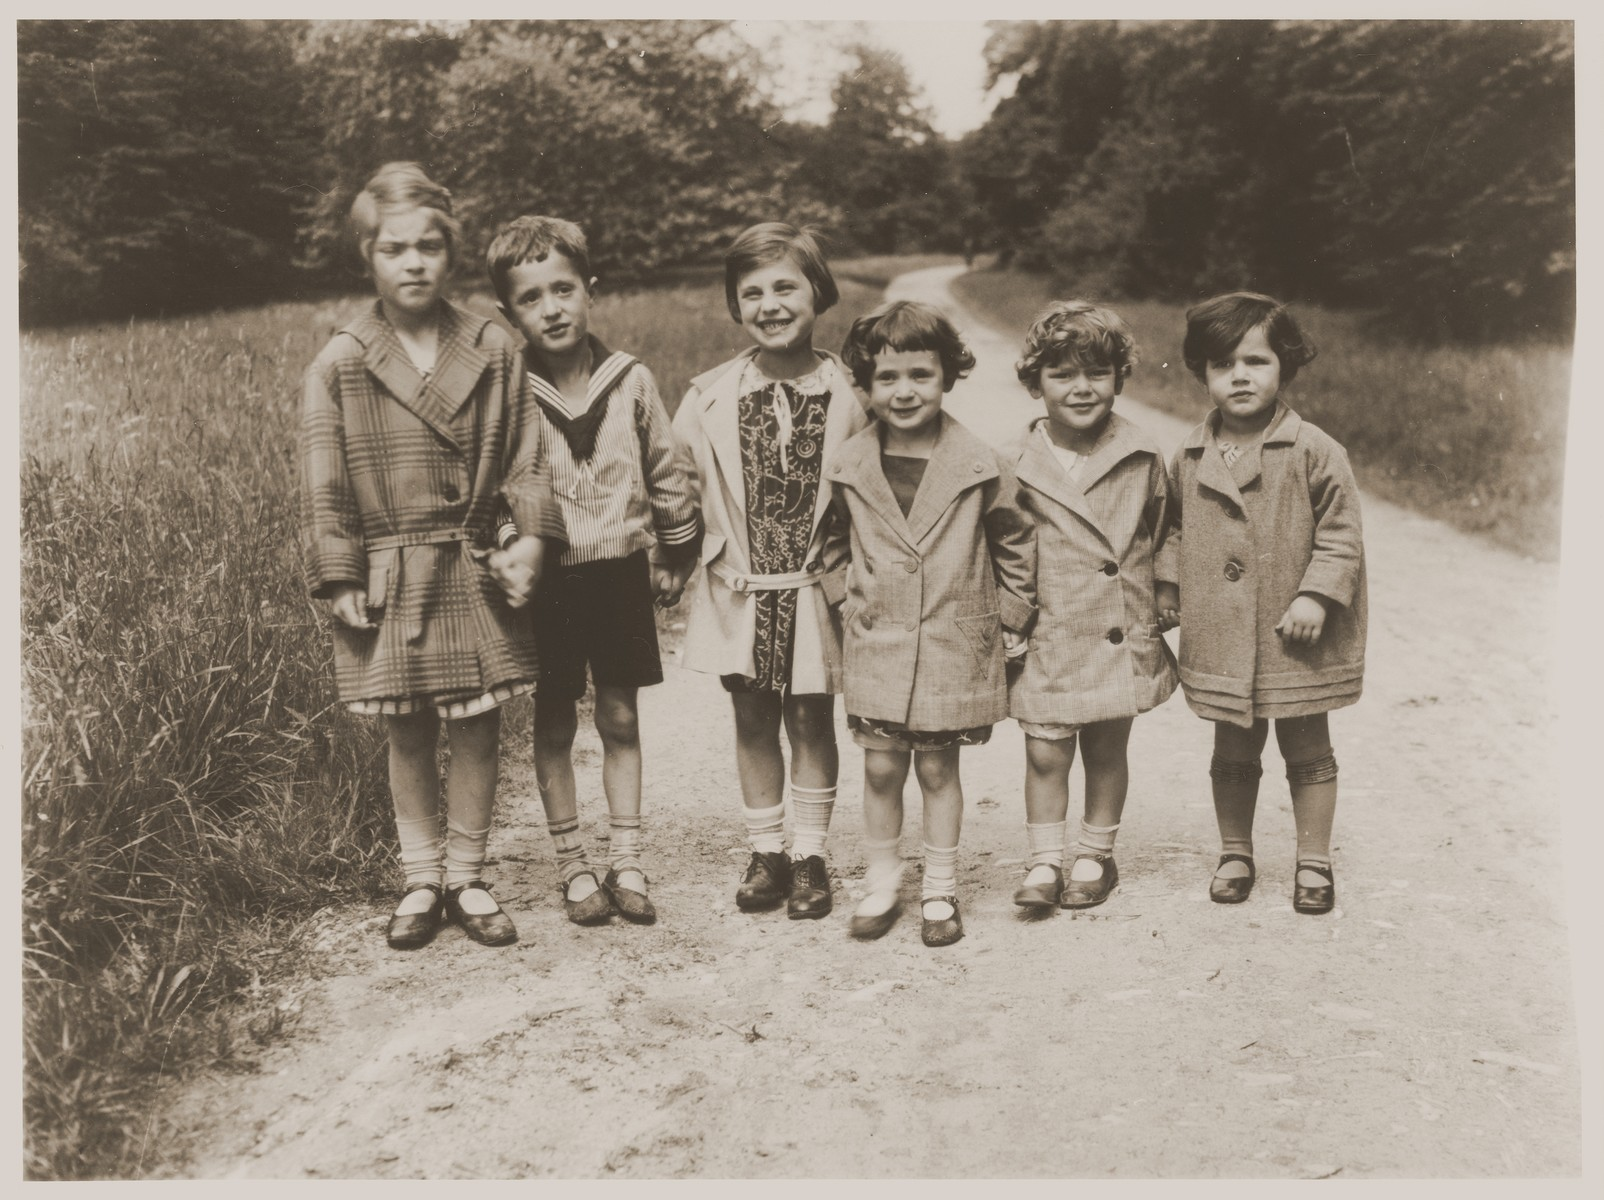 Lore Gotthelf (far right) with friends.  Pictured from left to right are: Elspeth ?; Rudolf Windmuller; Elspeth's sister, Margaret; Ursel Wertheim; Hanna Windmuller; and Lore Gotthelf.